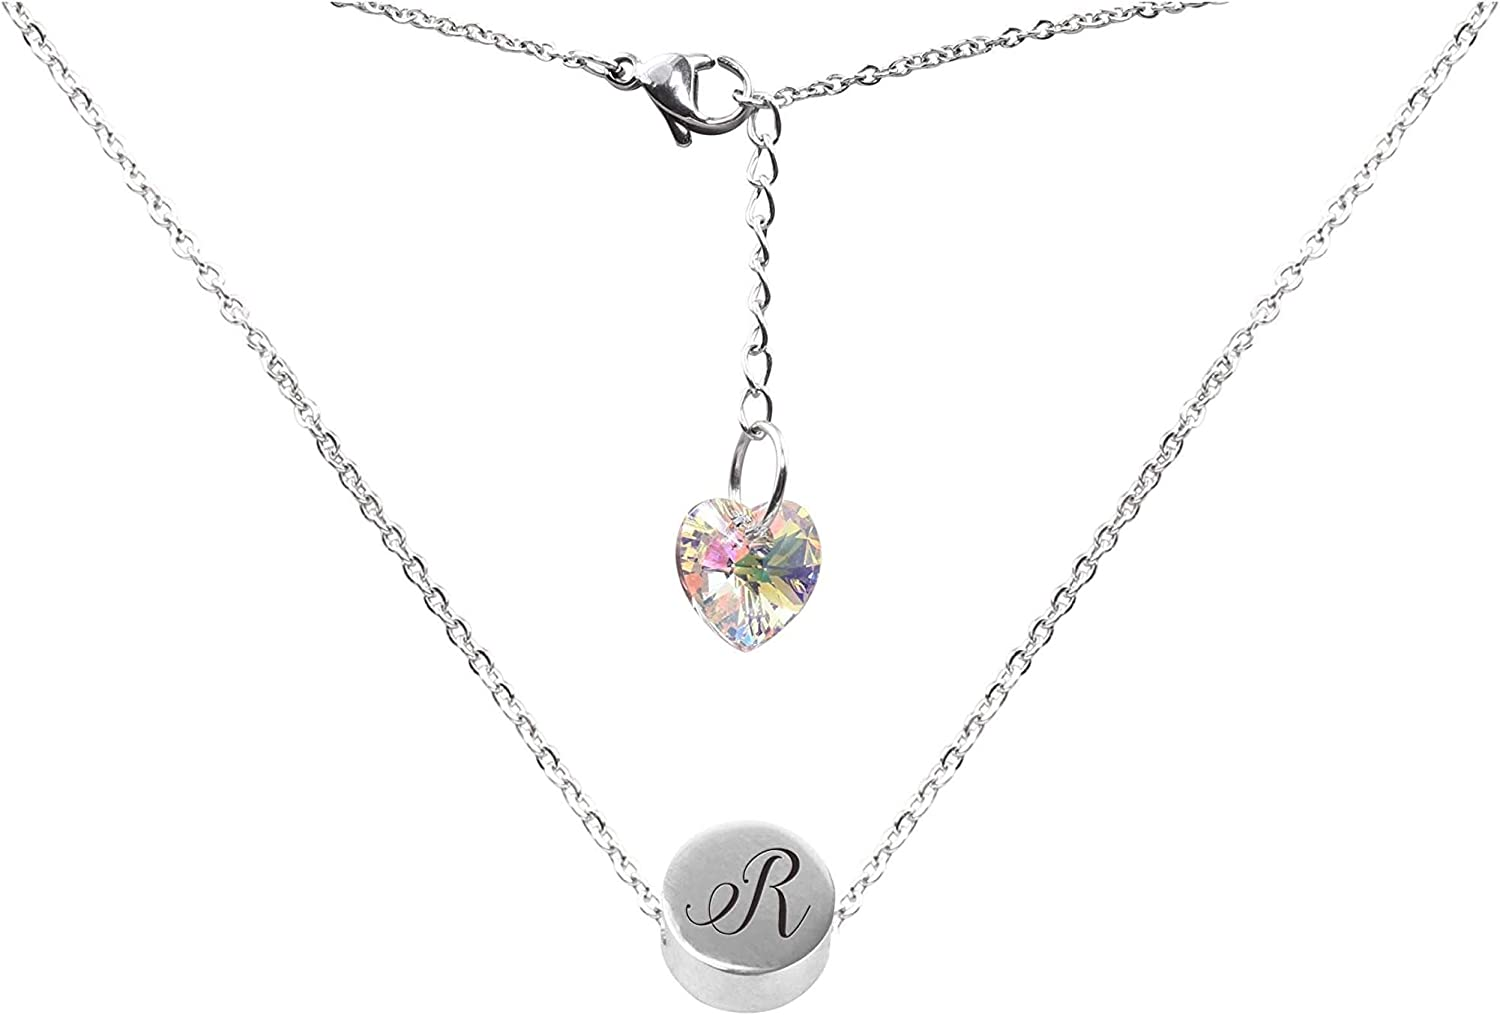 Pink Box Round Slider Bead Initial Necklace Made with Crystals from Swarovski R